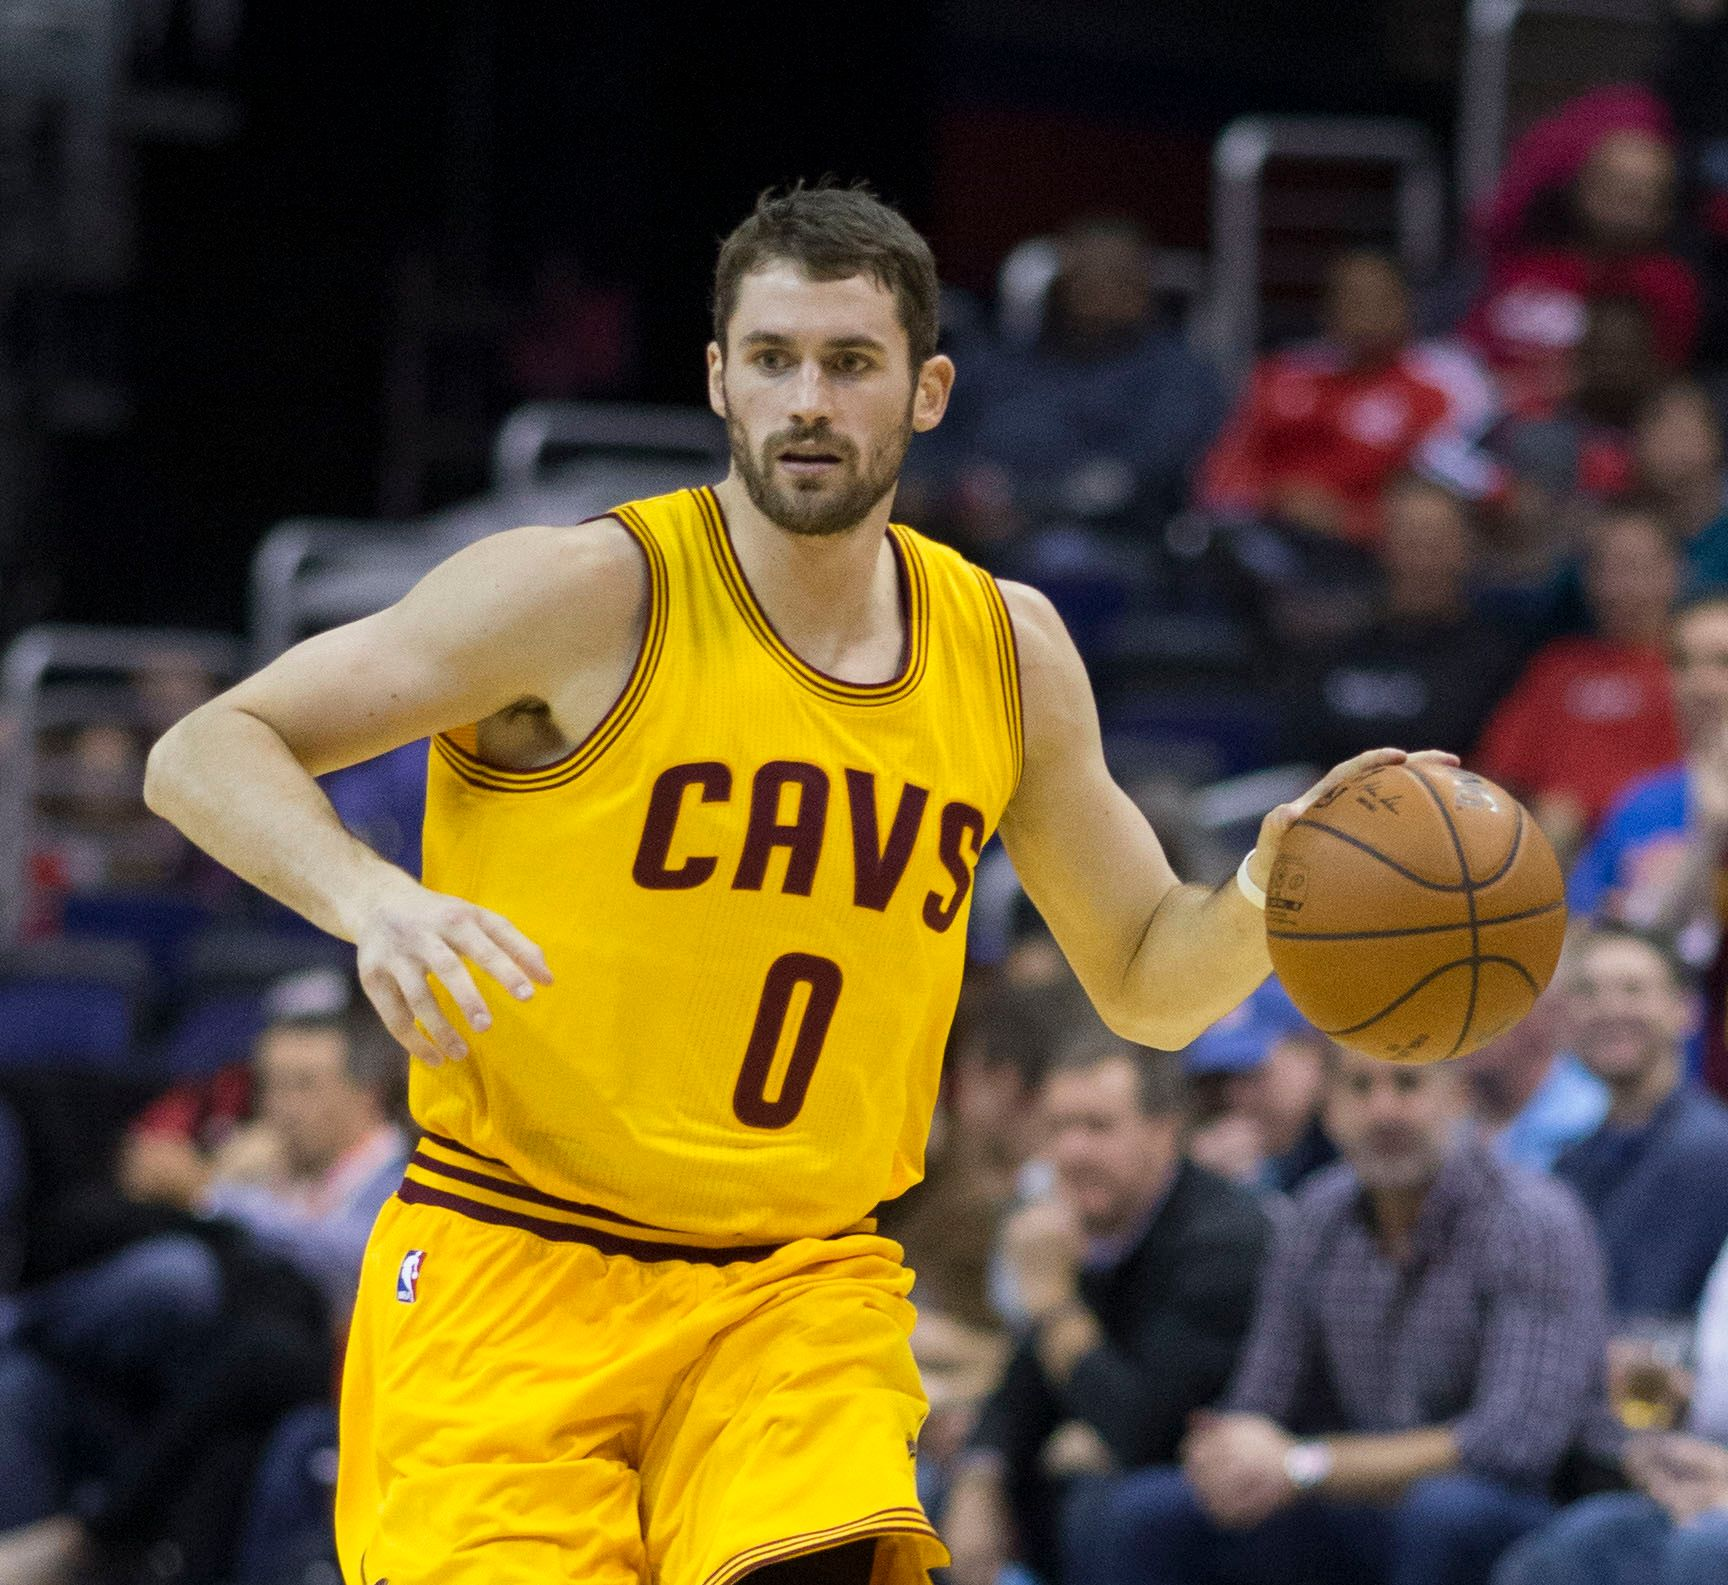 Kevin Love of the Cleveland Cavaliers dribbles the bal down court.